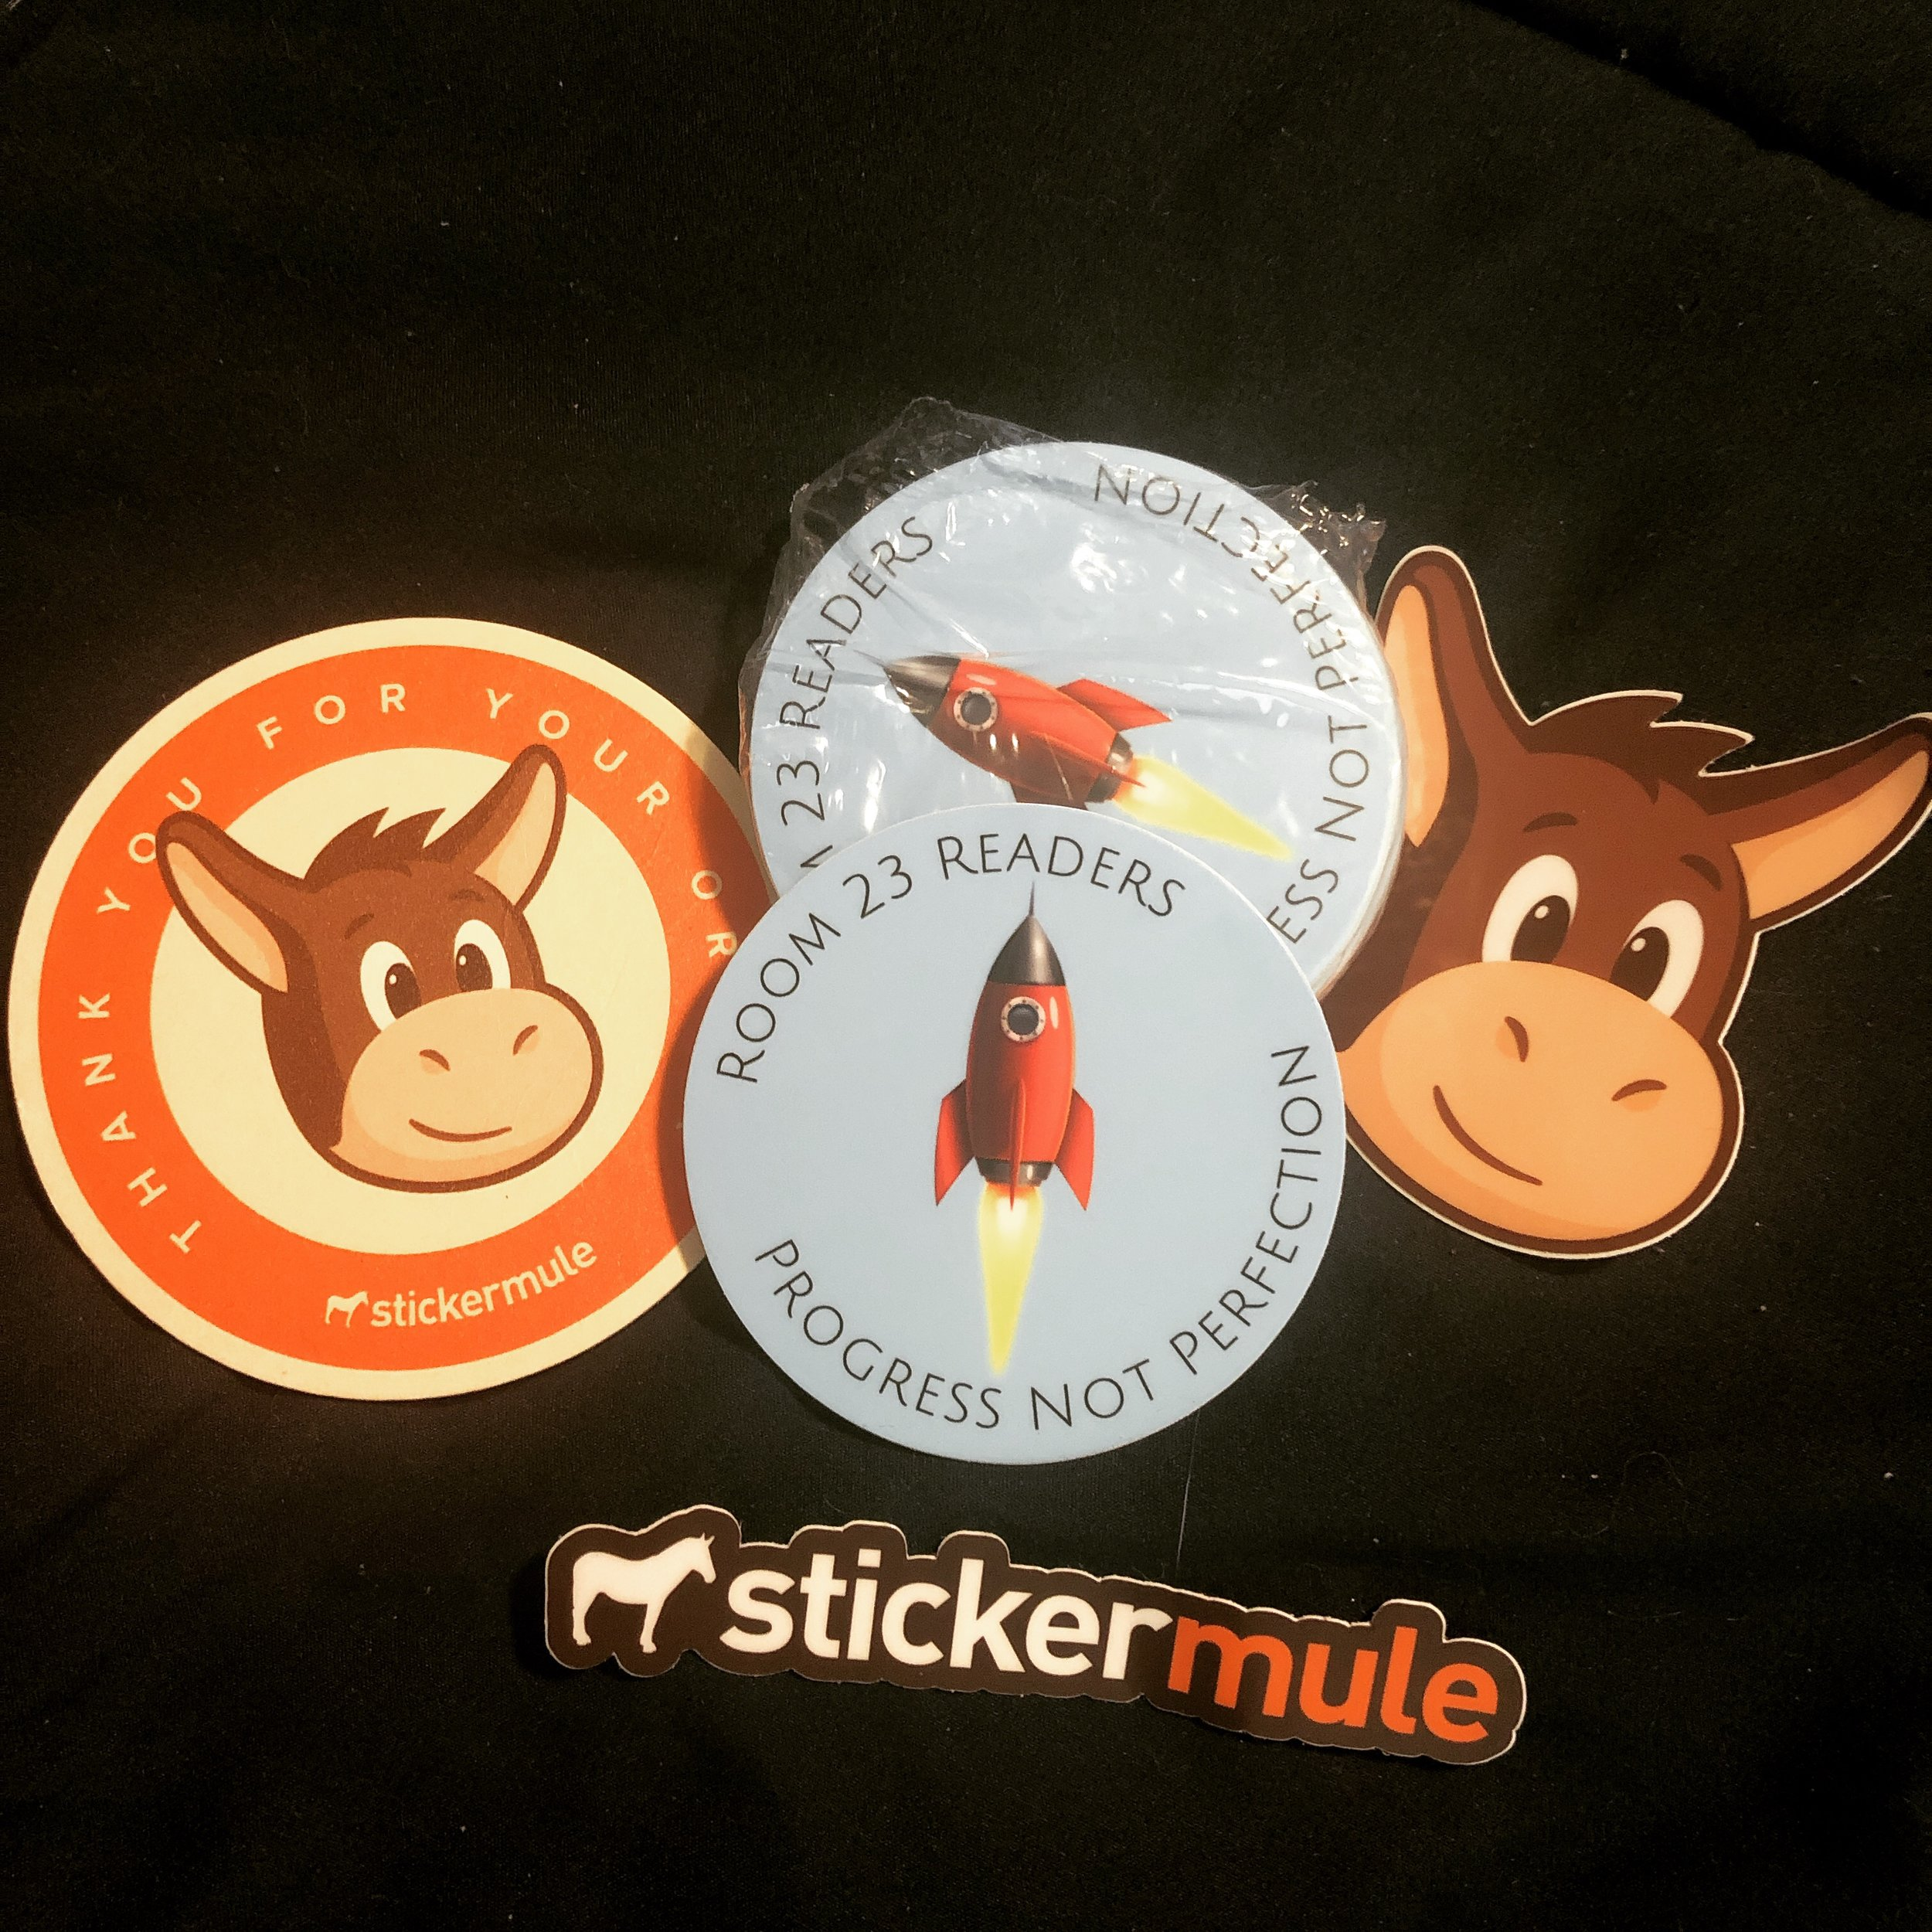 Shout out to the AMAZING @stickermule!  The quality of their stickers and their FABULOUS customer service are a winning combination!